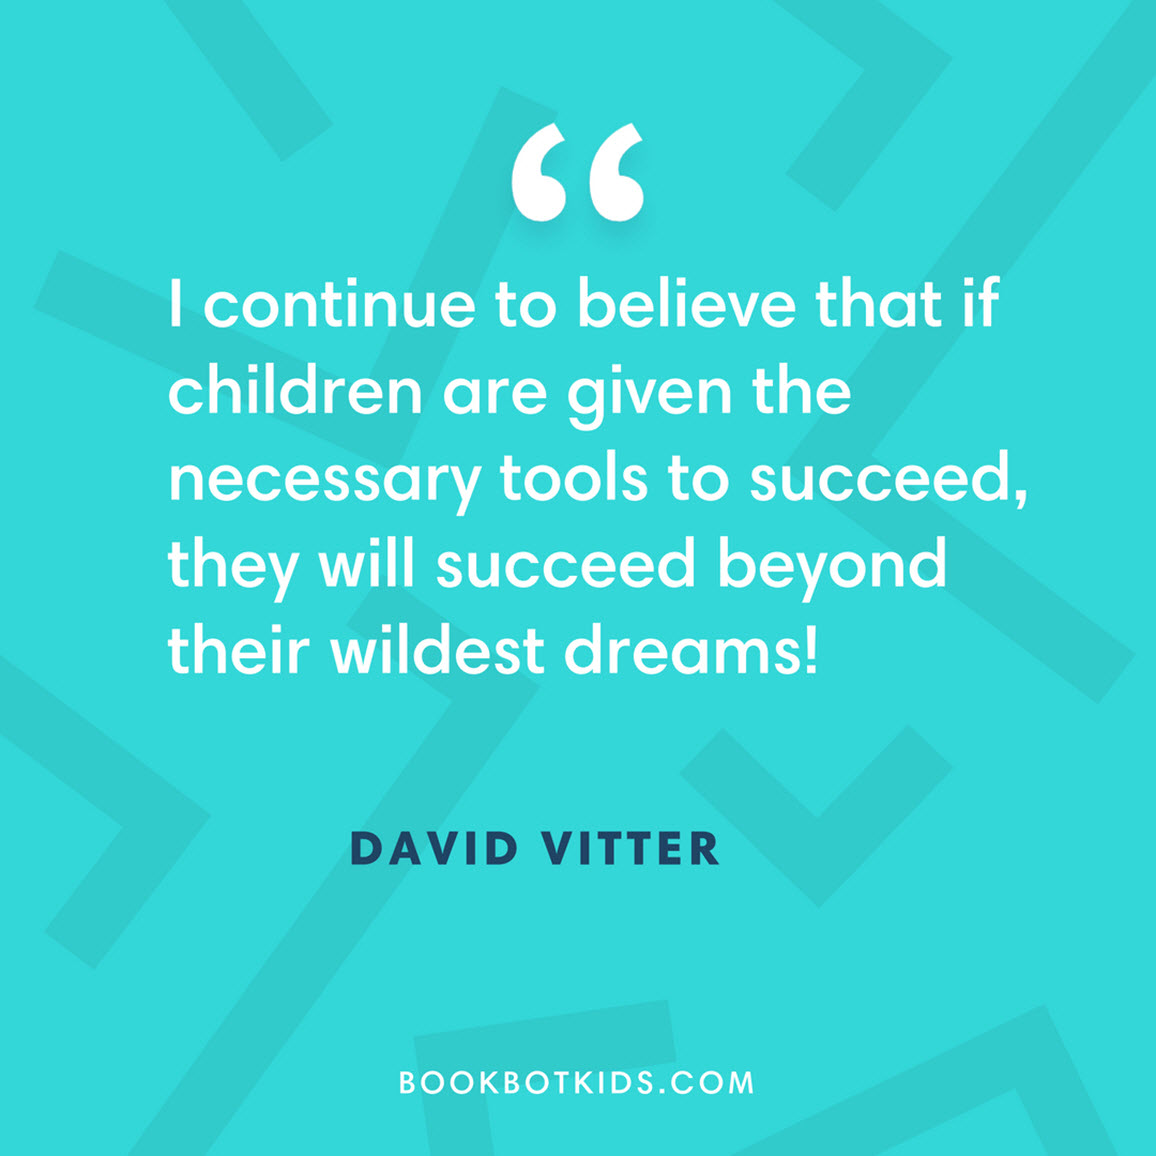 I continue to believe that if children are given the necessary tools to succeed, they will succeed beyond their wildest dreams! – David Vitter